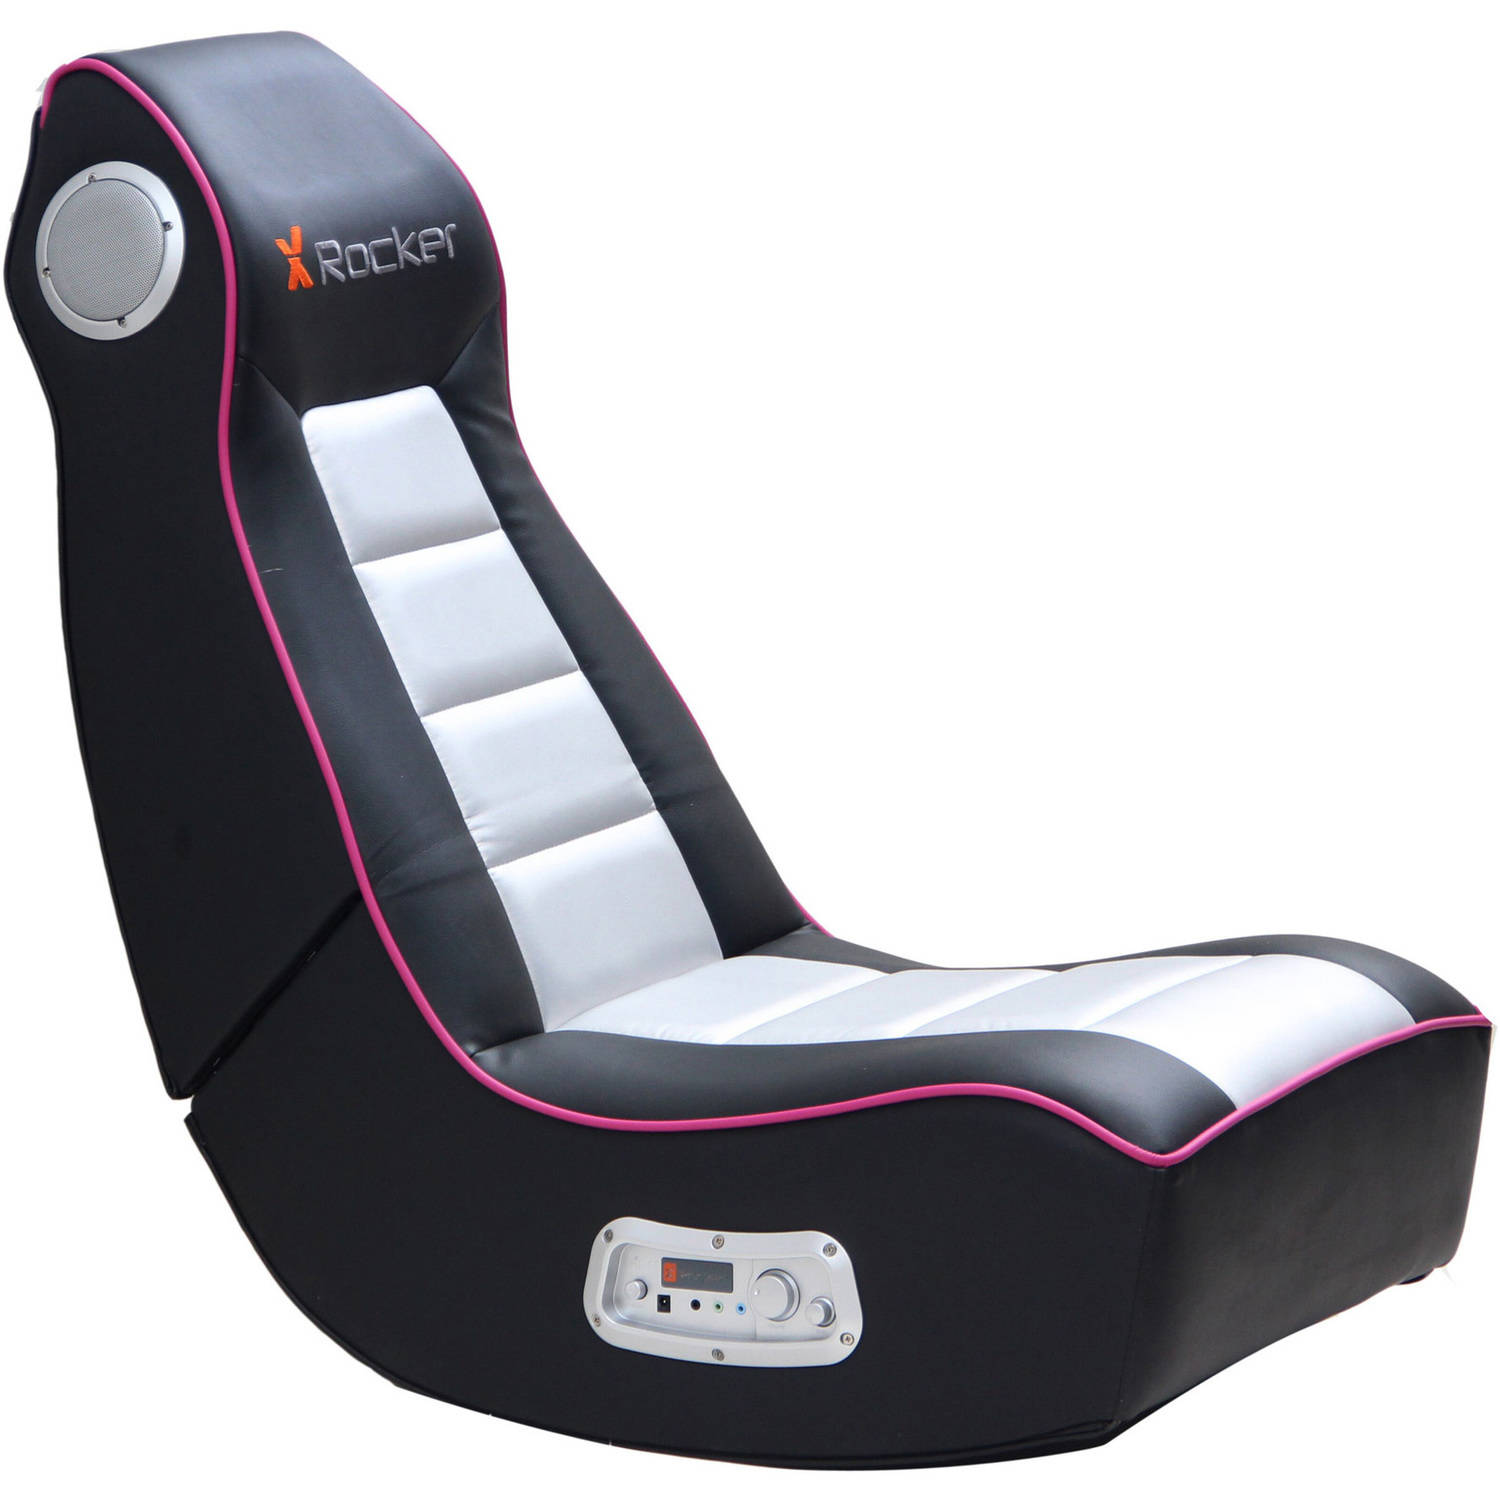 Game Chair Rocker X Rocker 2 1 Wired Audio Gaming Chair Black Pink Ebay